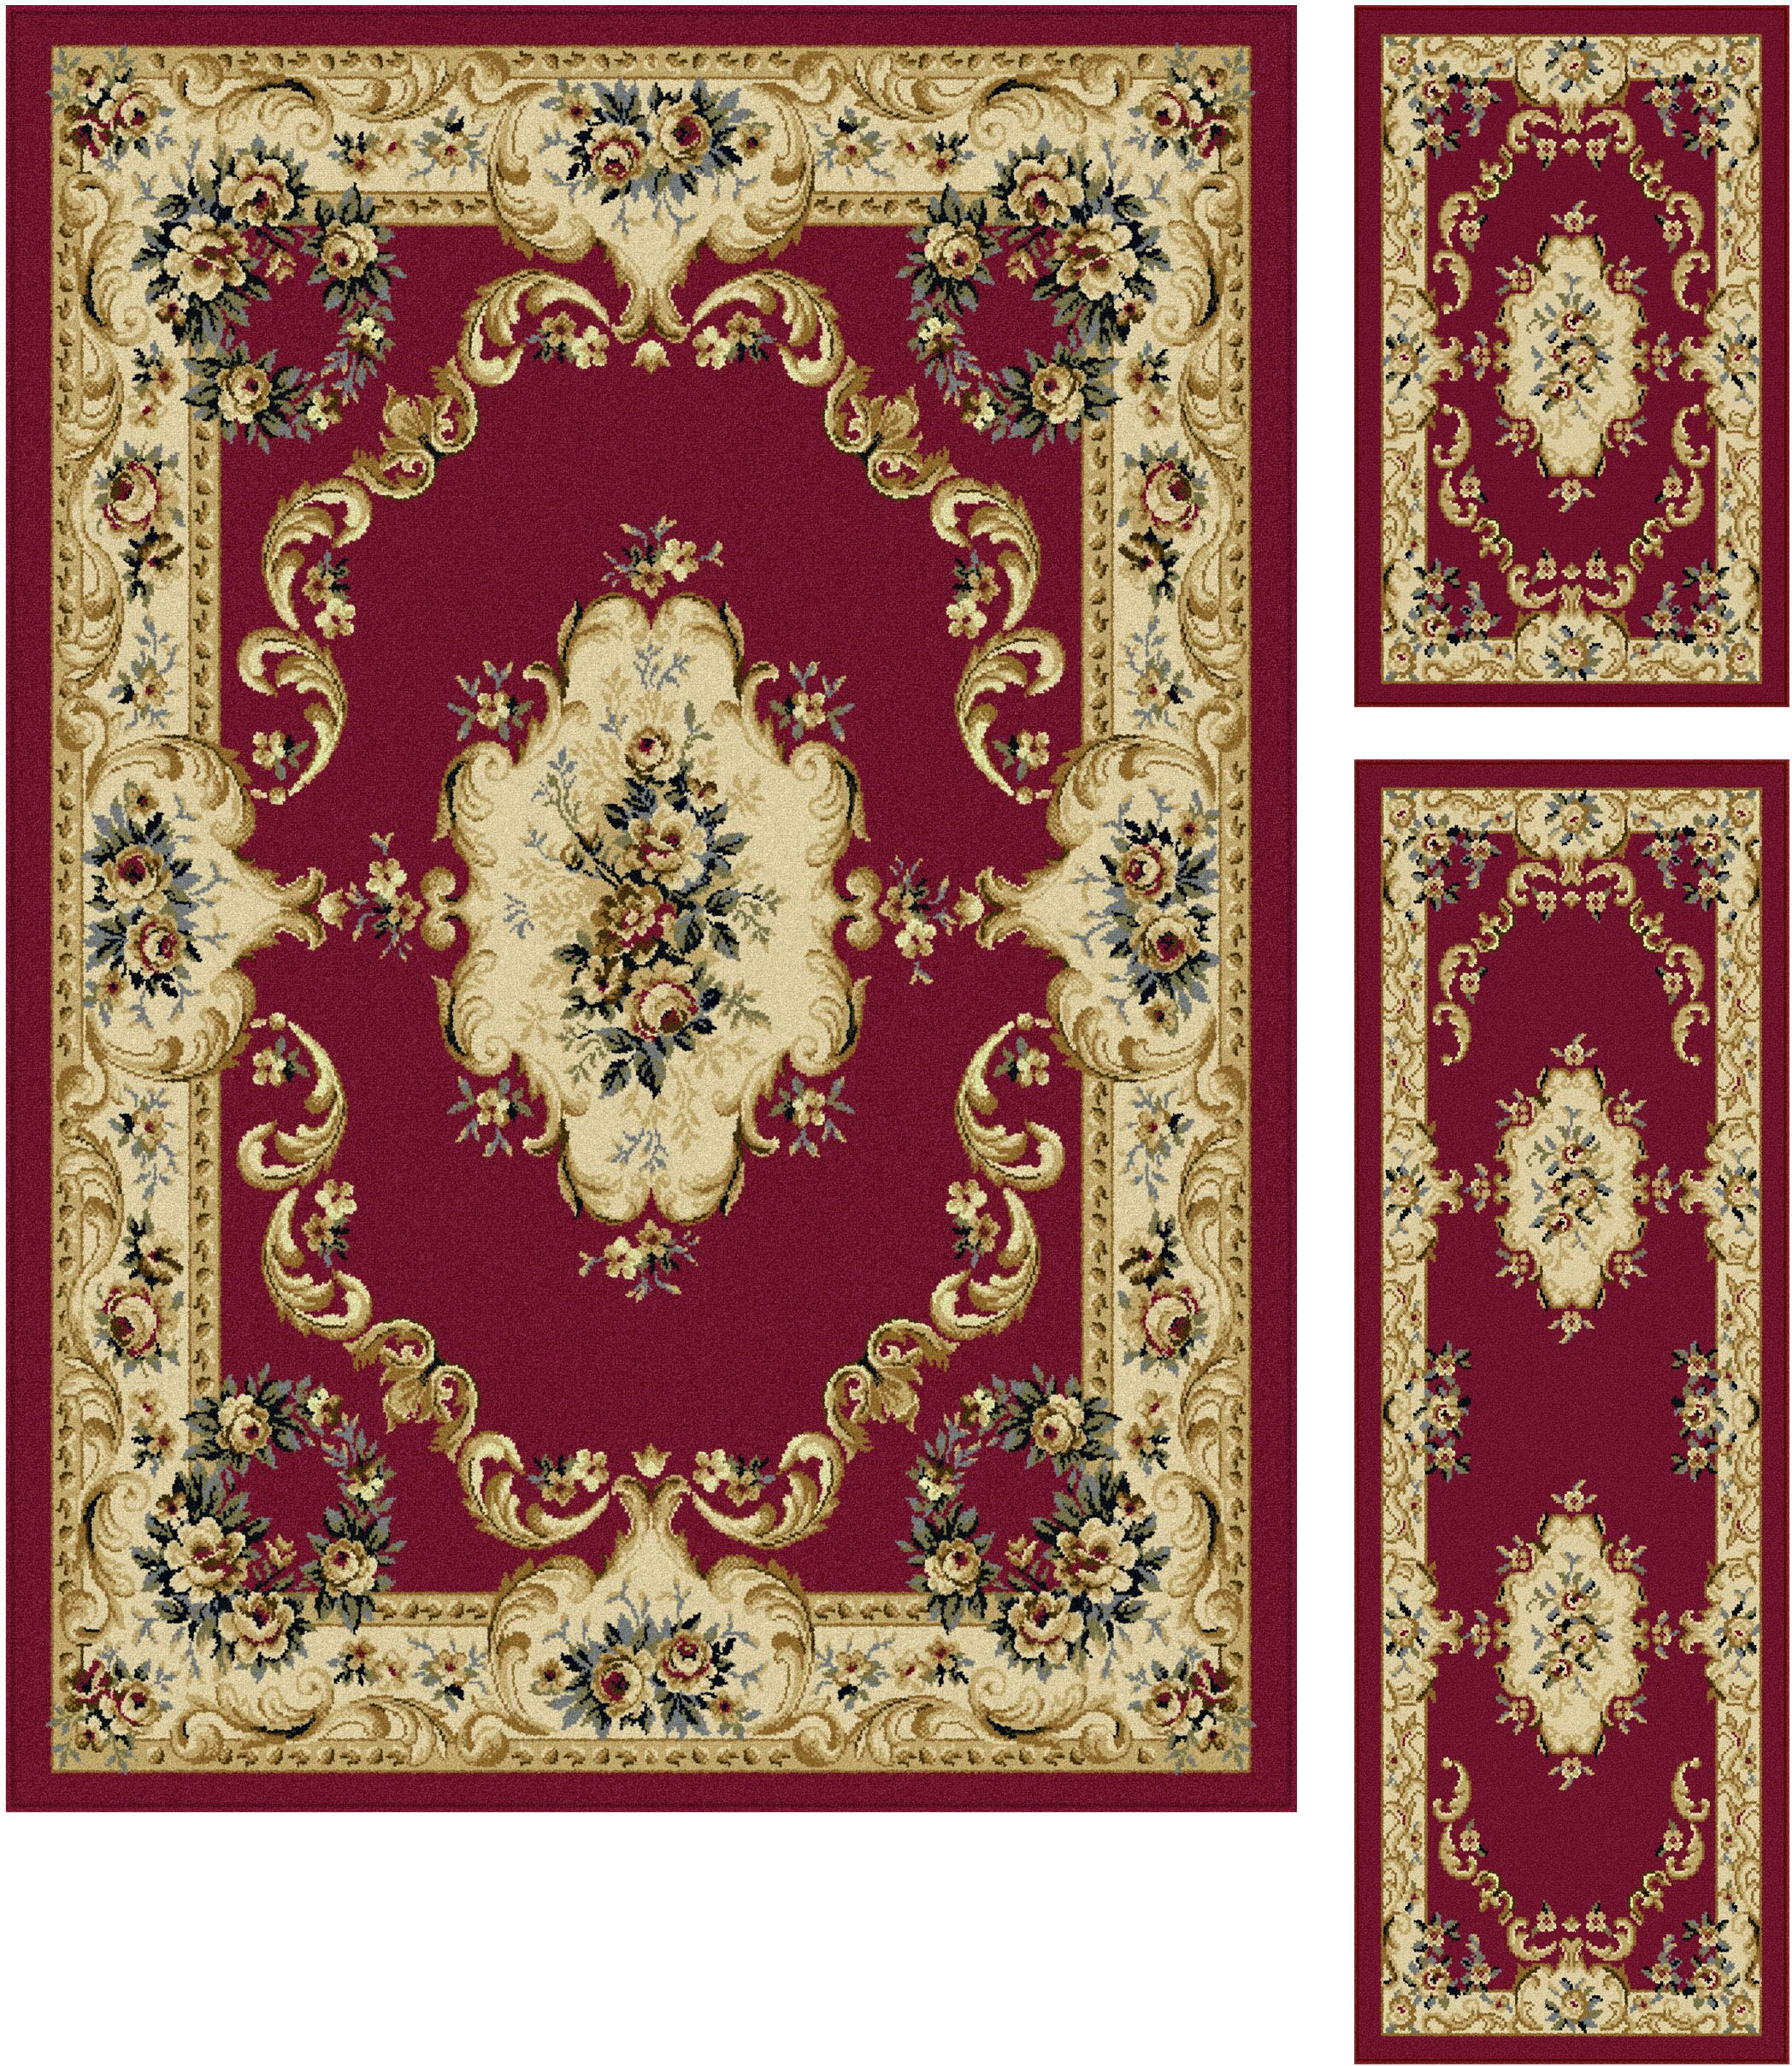 Larios 3 Piece Red Area Rug Set Rug Size: 5' x 7', 20'' x 60'', 20'' x 32''